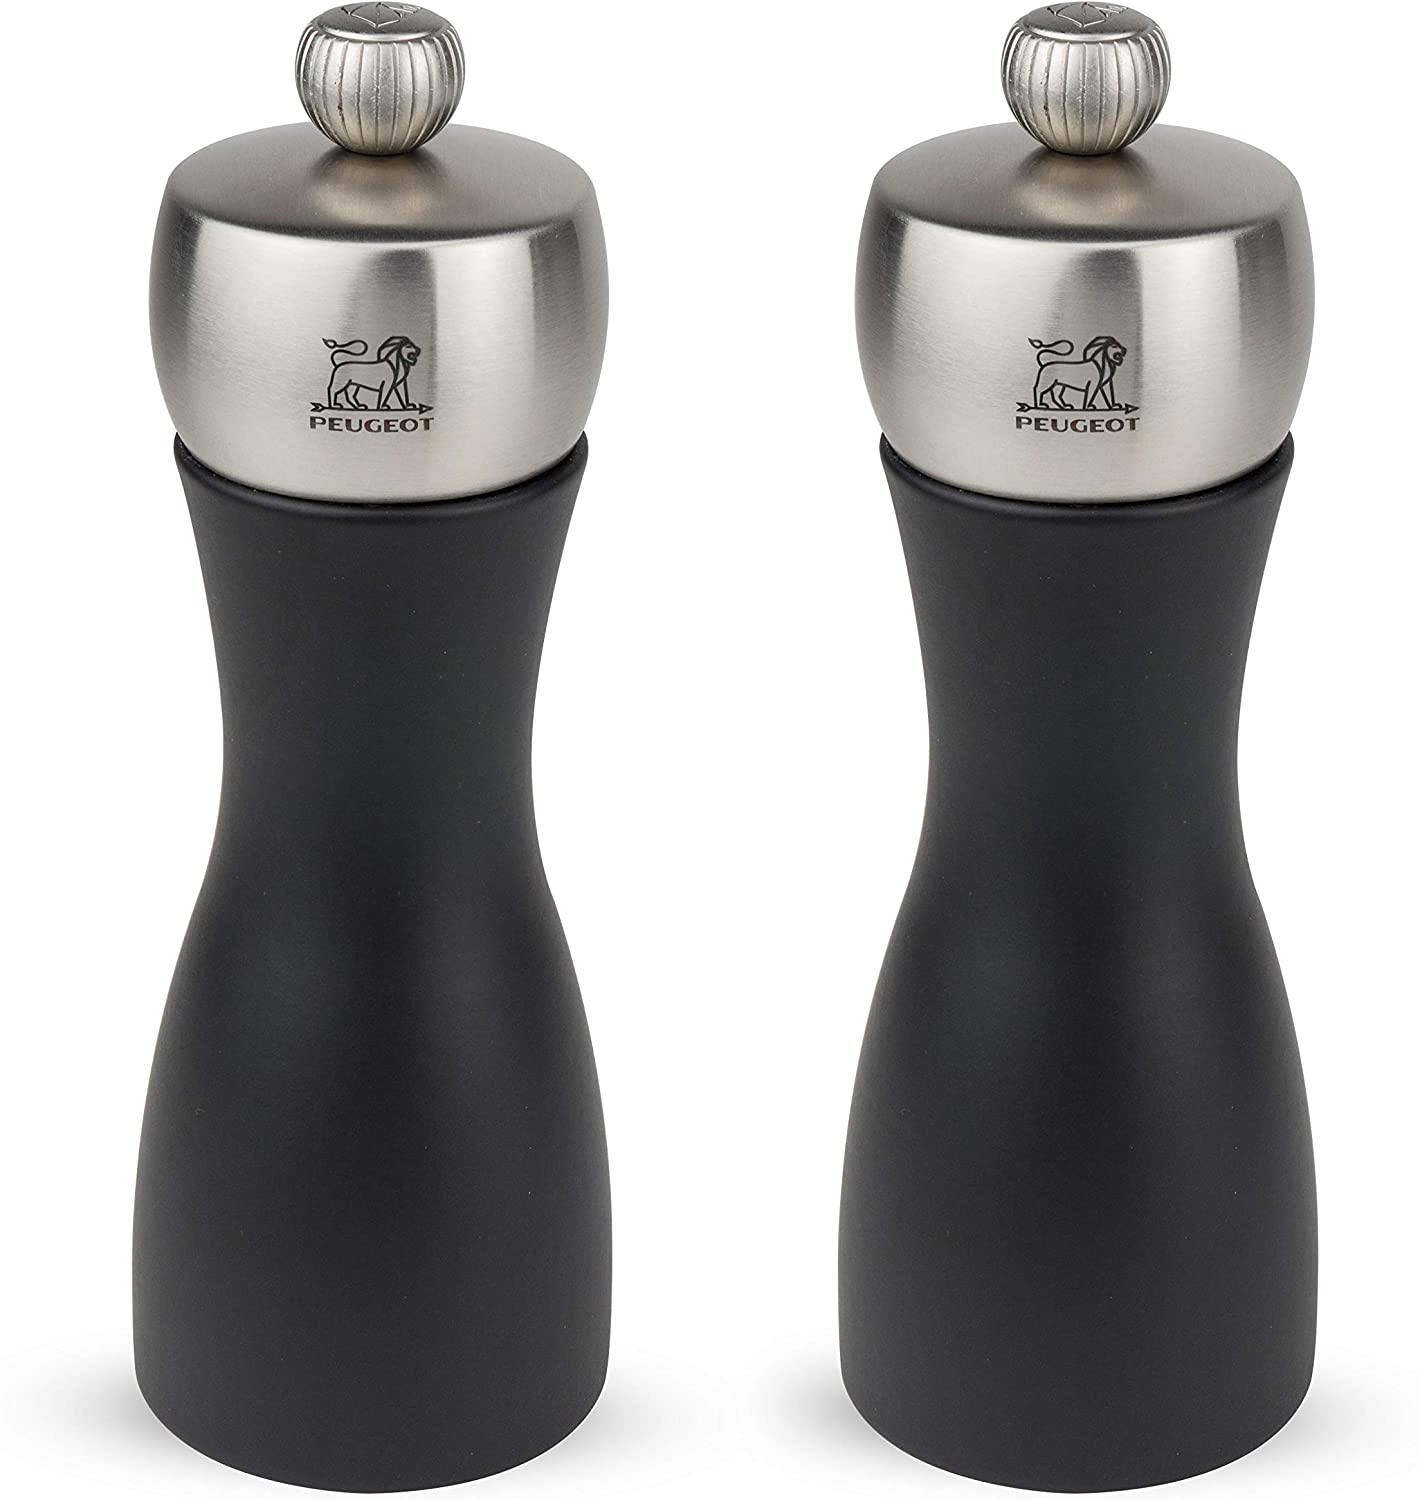 Peugeot Salt Mill & Pepper Mill Duo Set Fidji Black 15cm